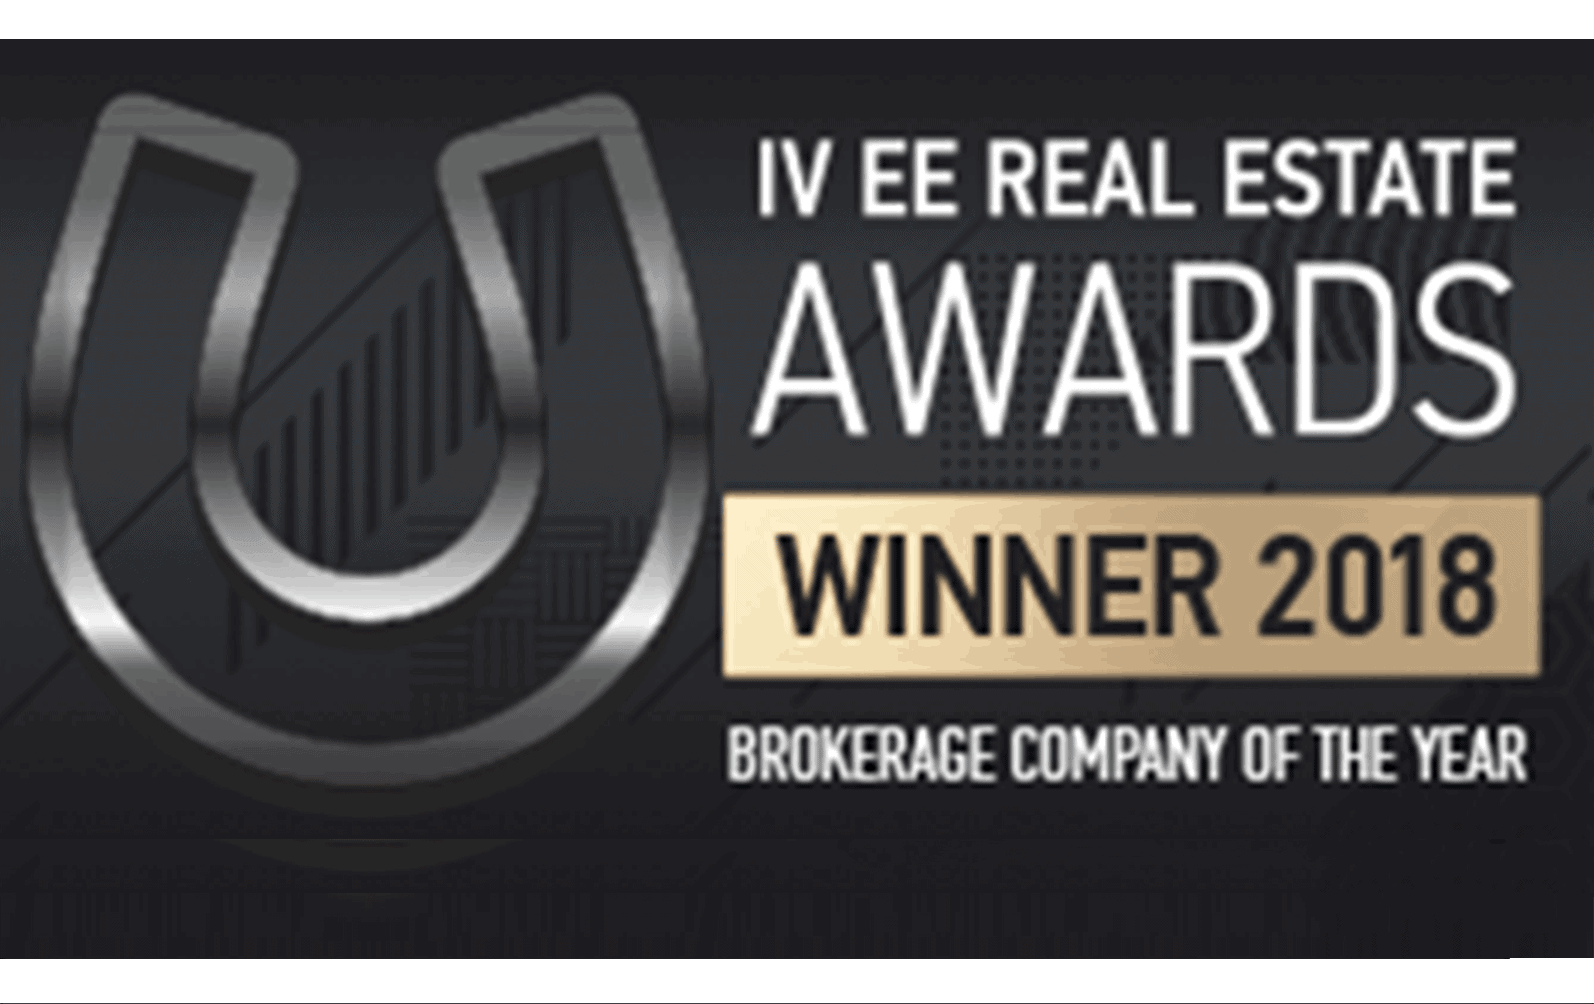 IV Eastern Europe Real Estate Awards 2018